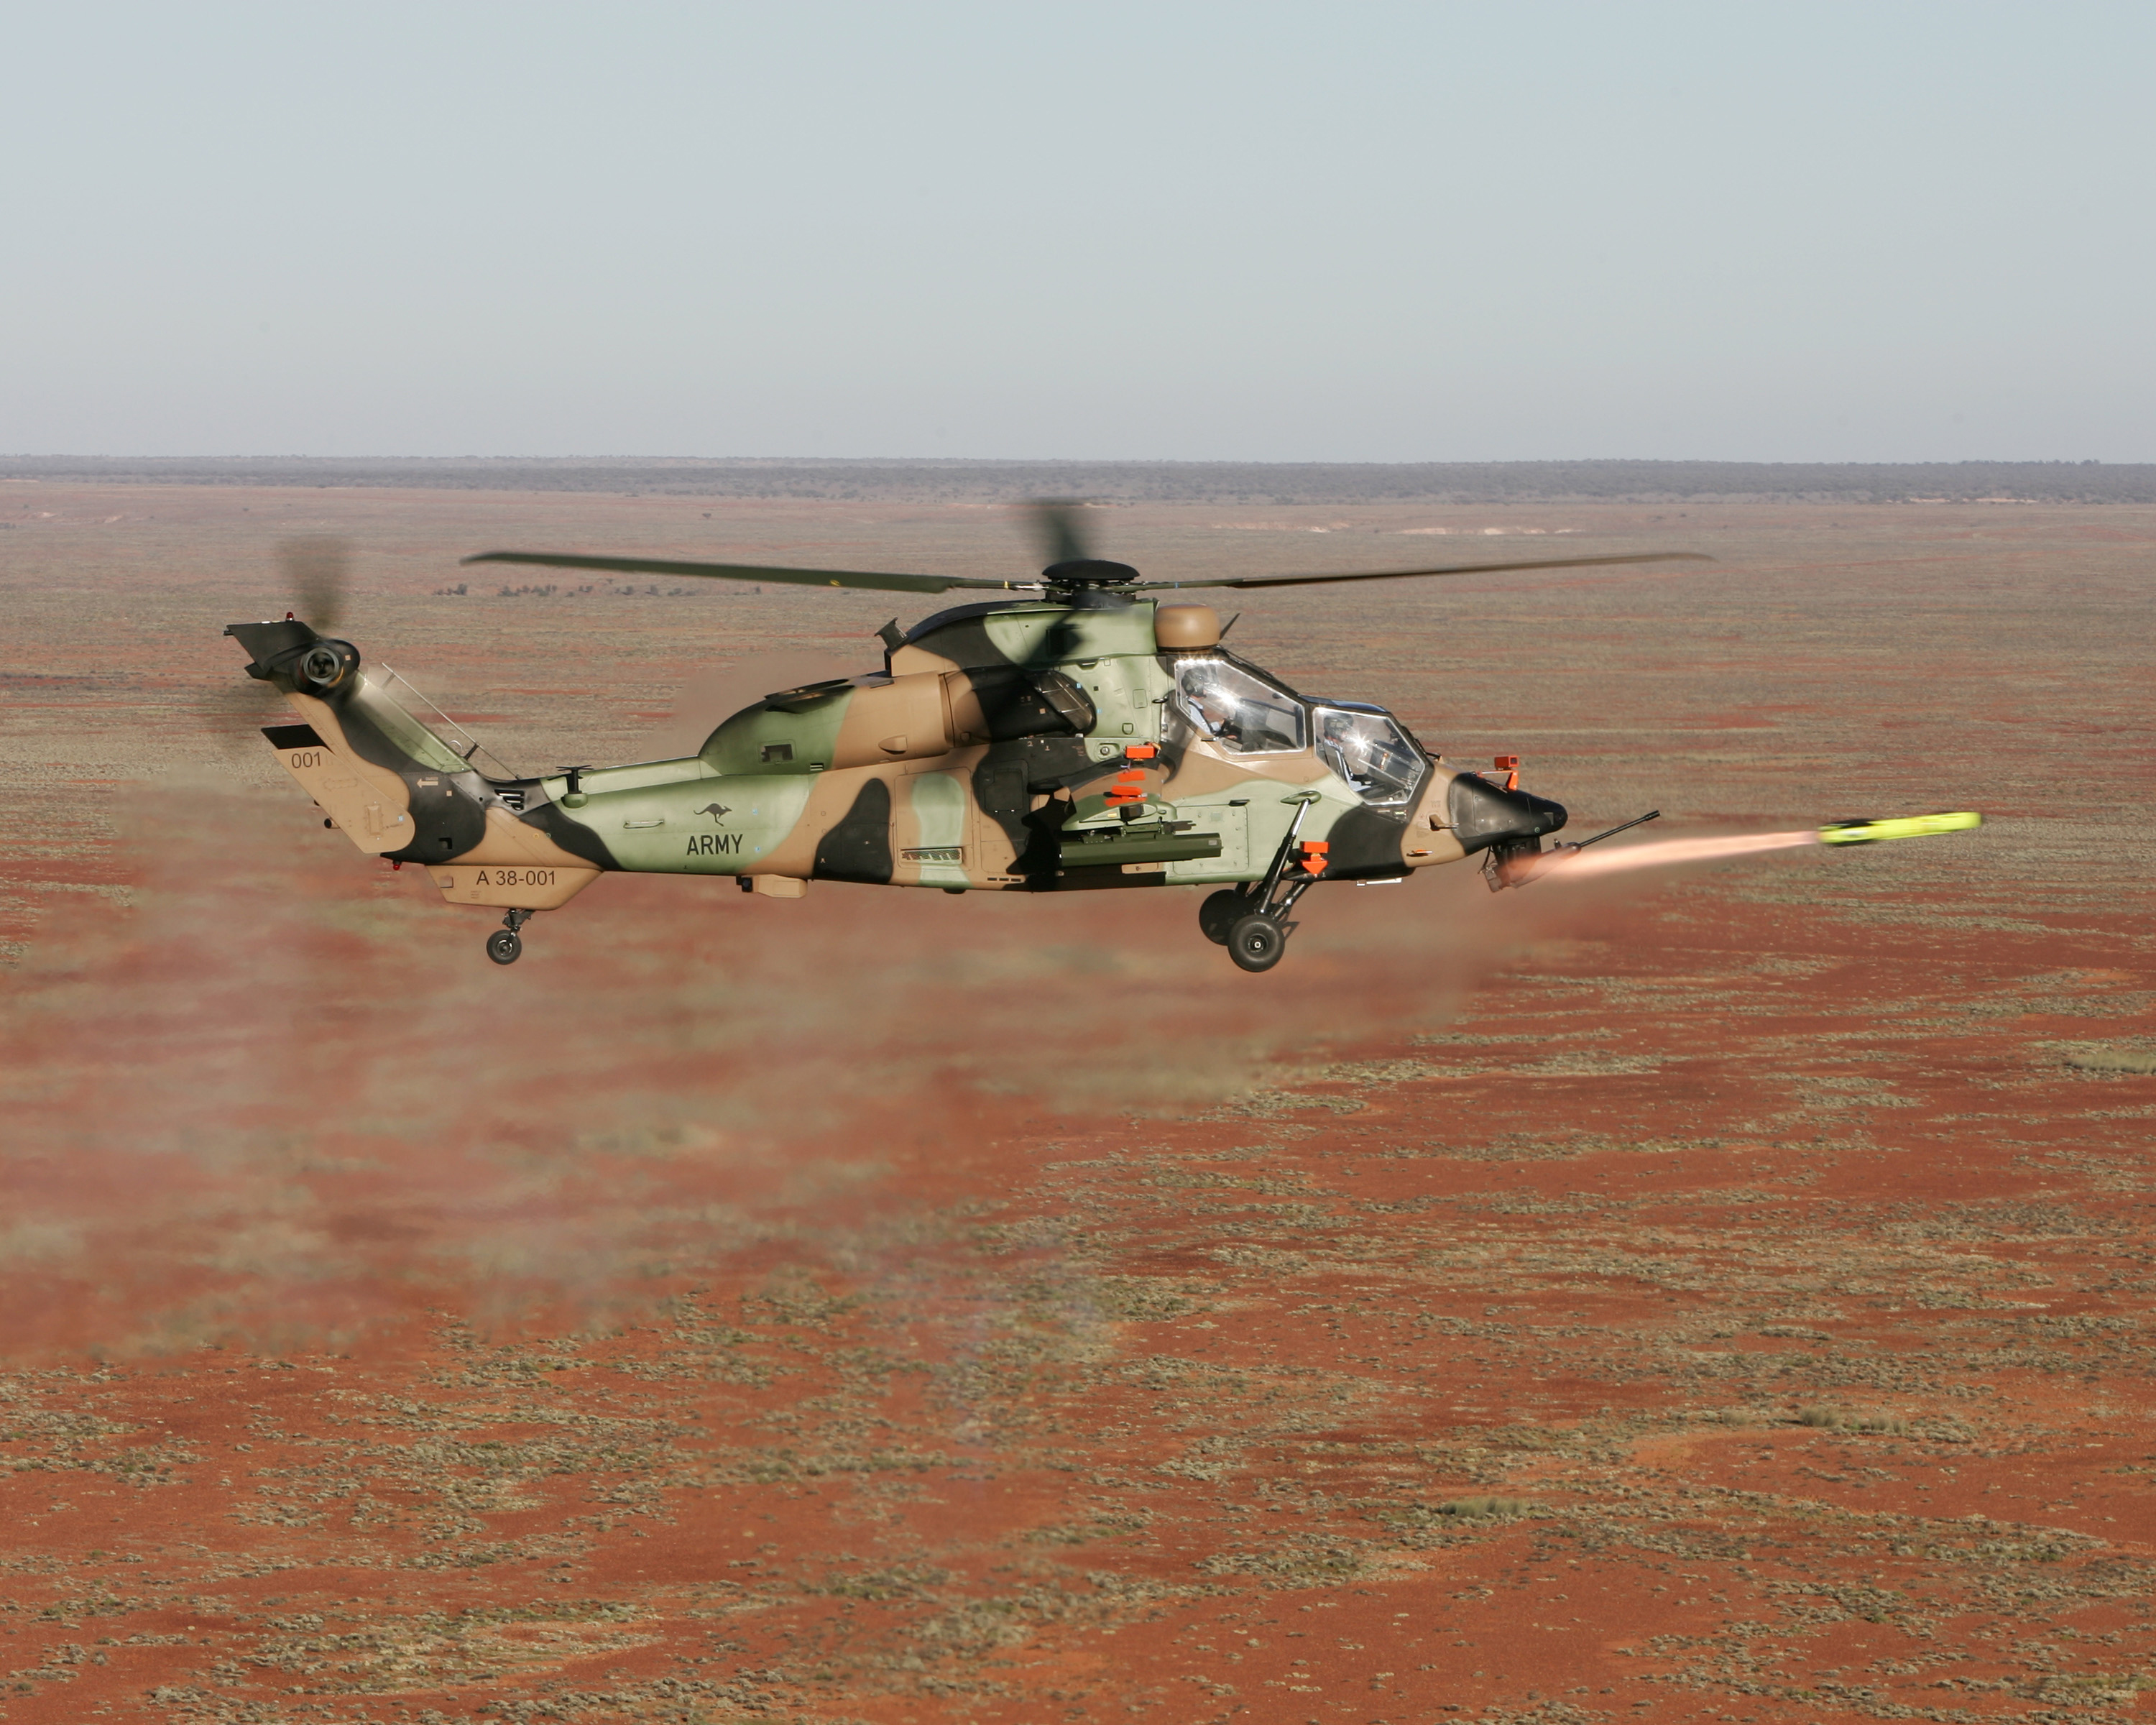 aircraft helicopters vehicles Australian Outback Australian Military